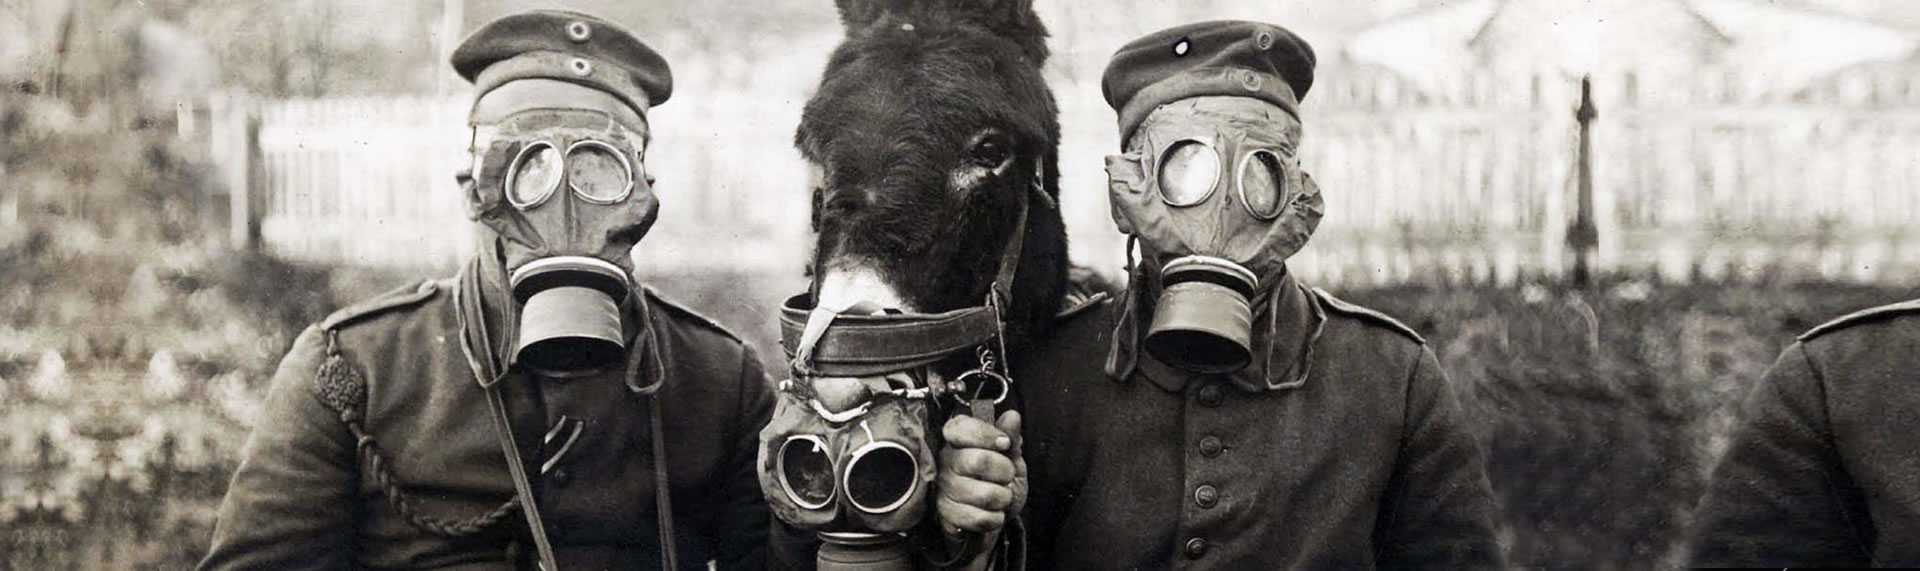 two WW1 soldiers and a donkey all wearing gas masks